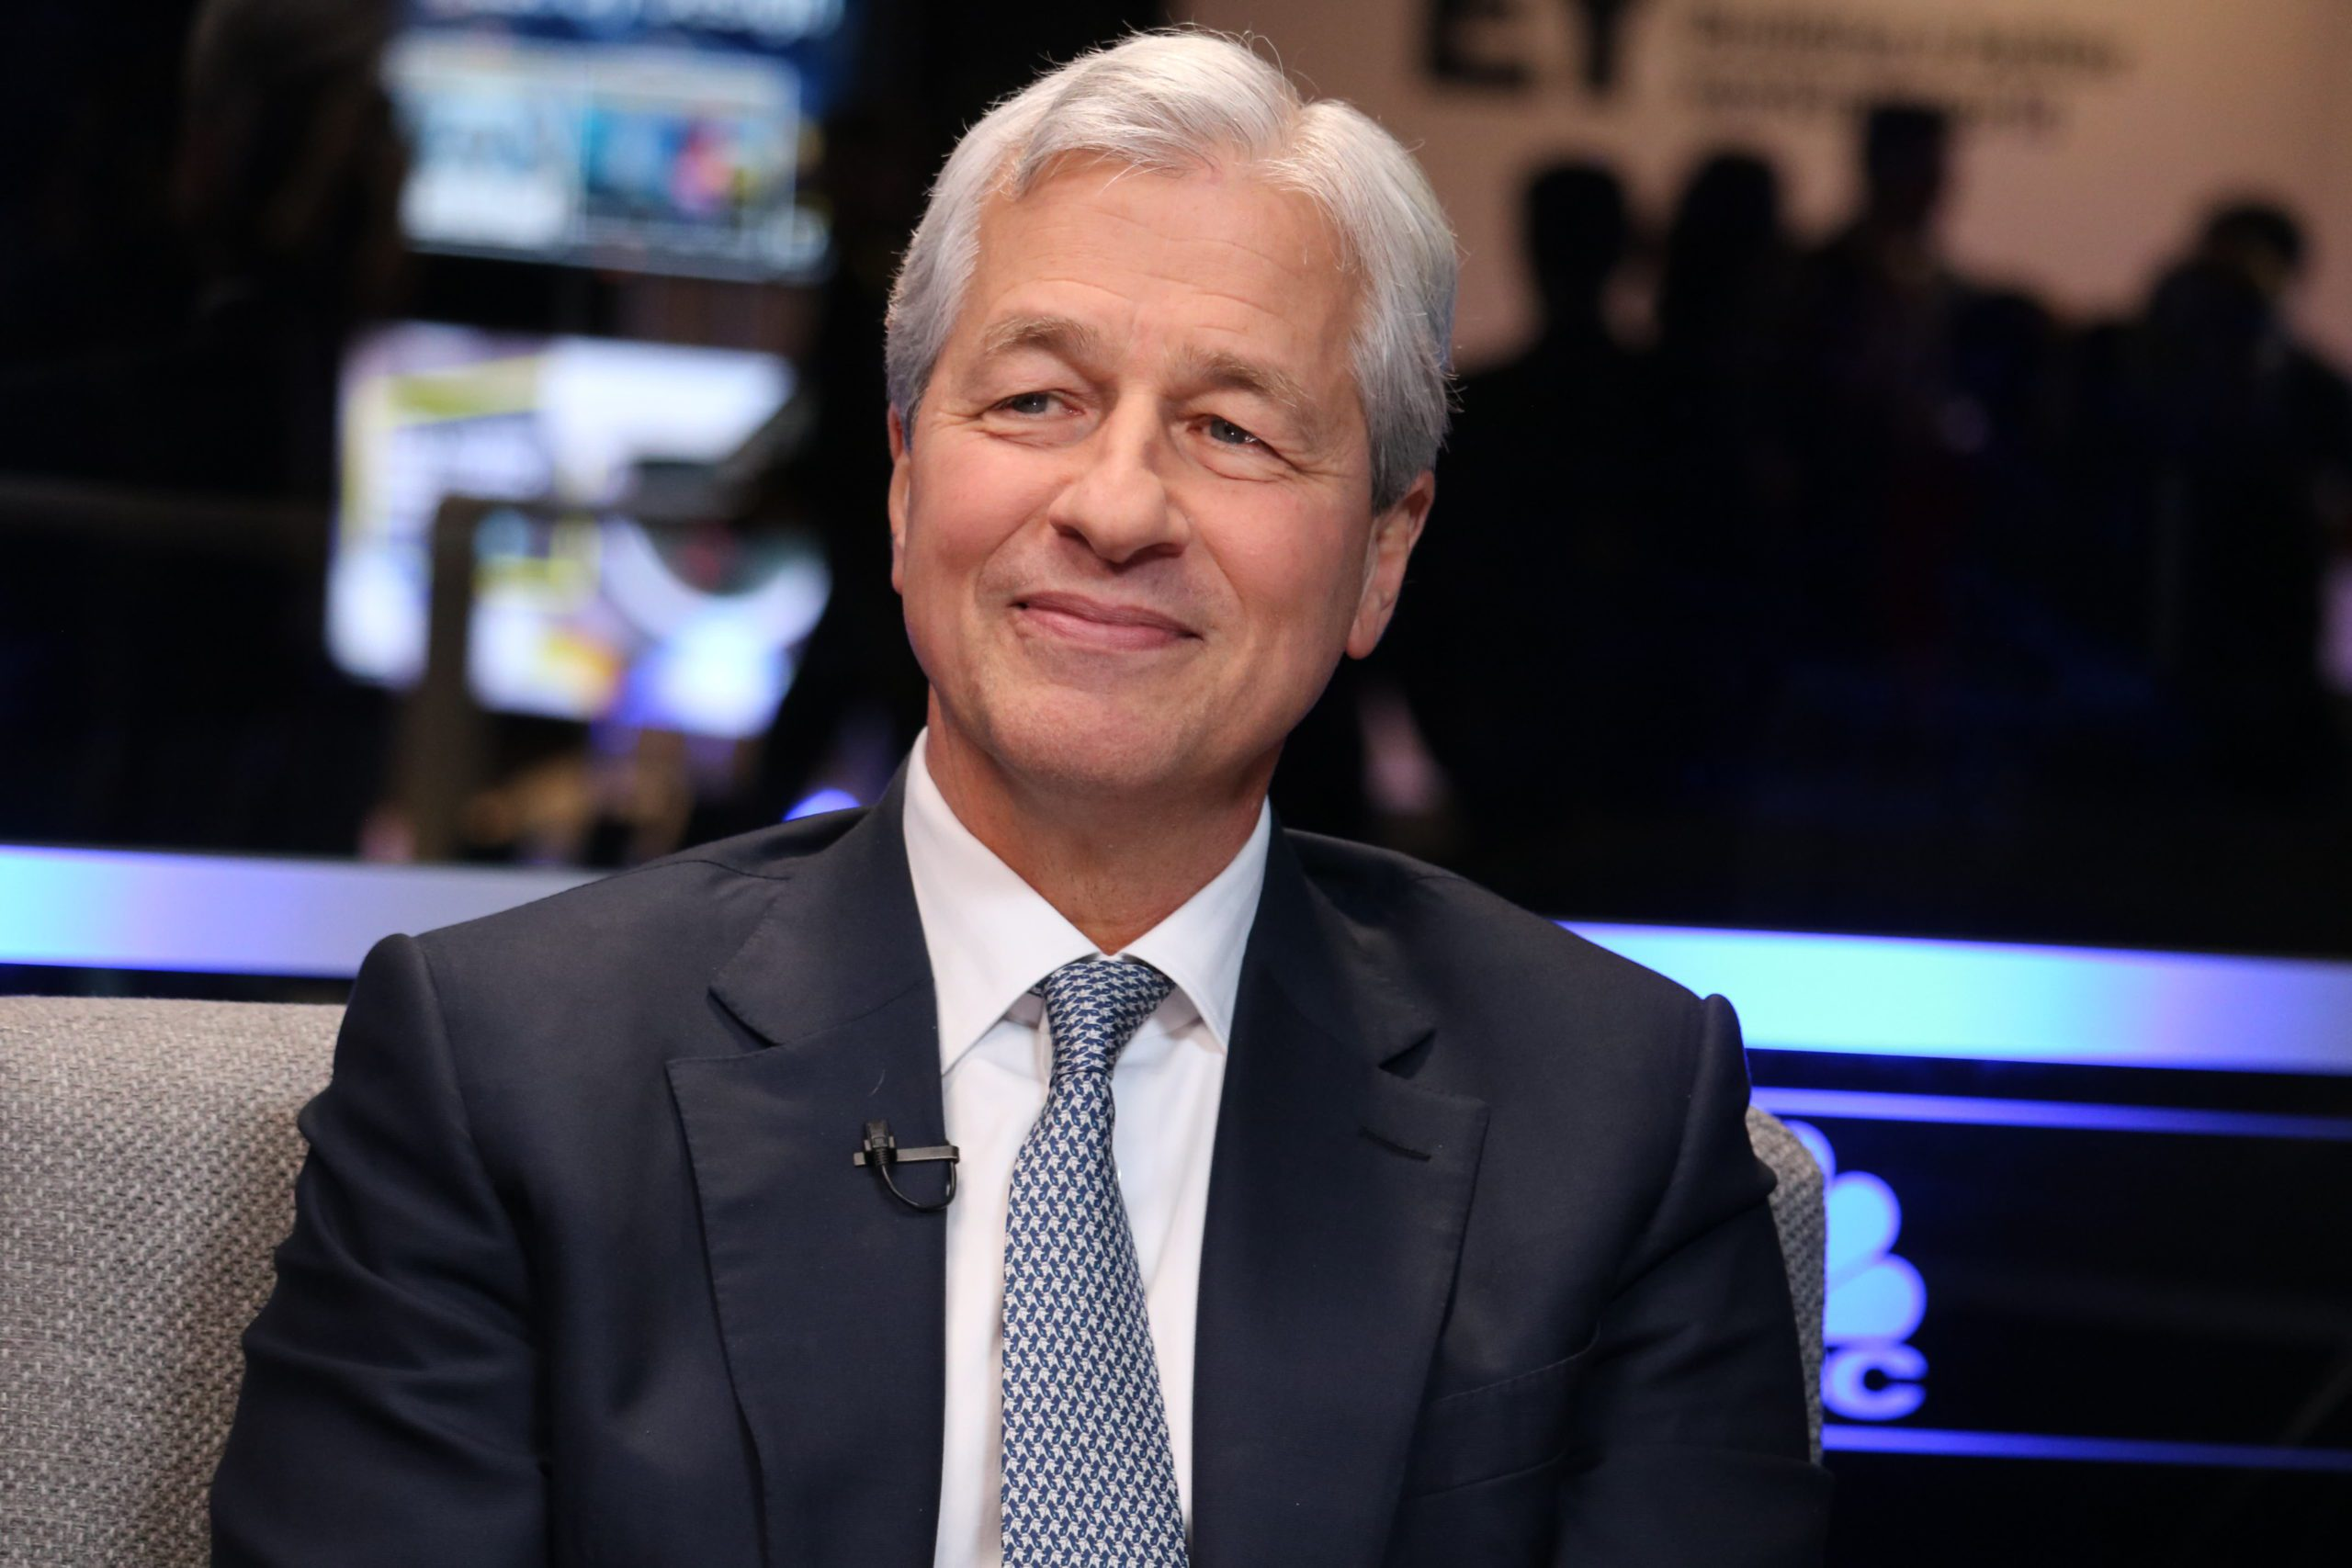 cnbc:-jamie-dimon-says-economic-boom-fueled-by-deficit-spending,-vaccines-could-'easily-run-into-2023'